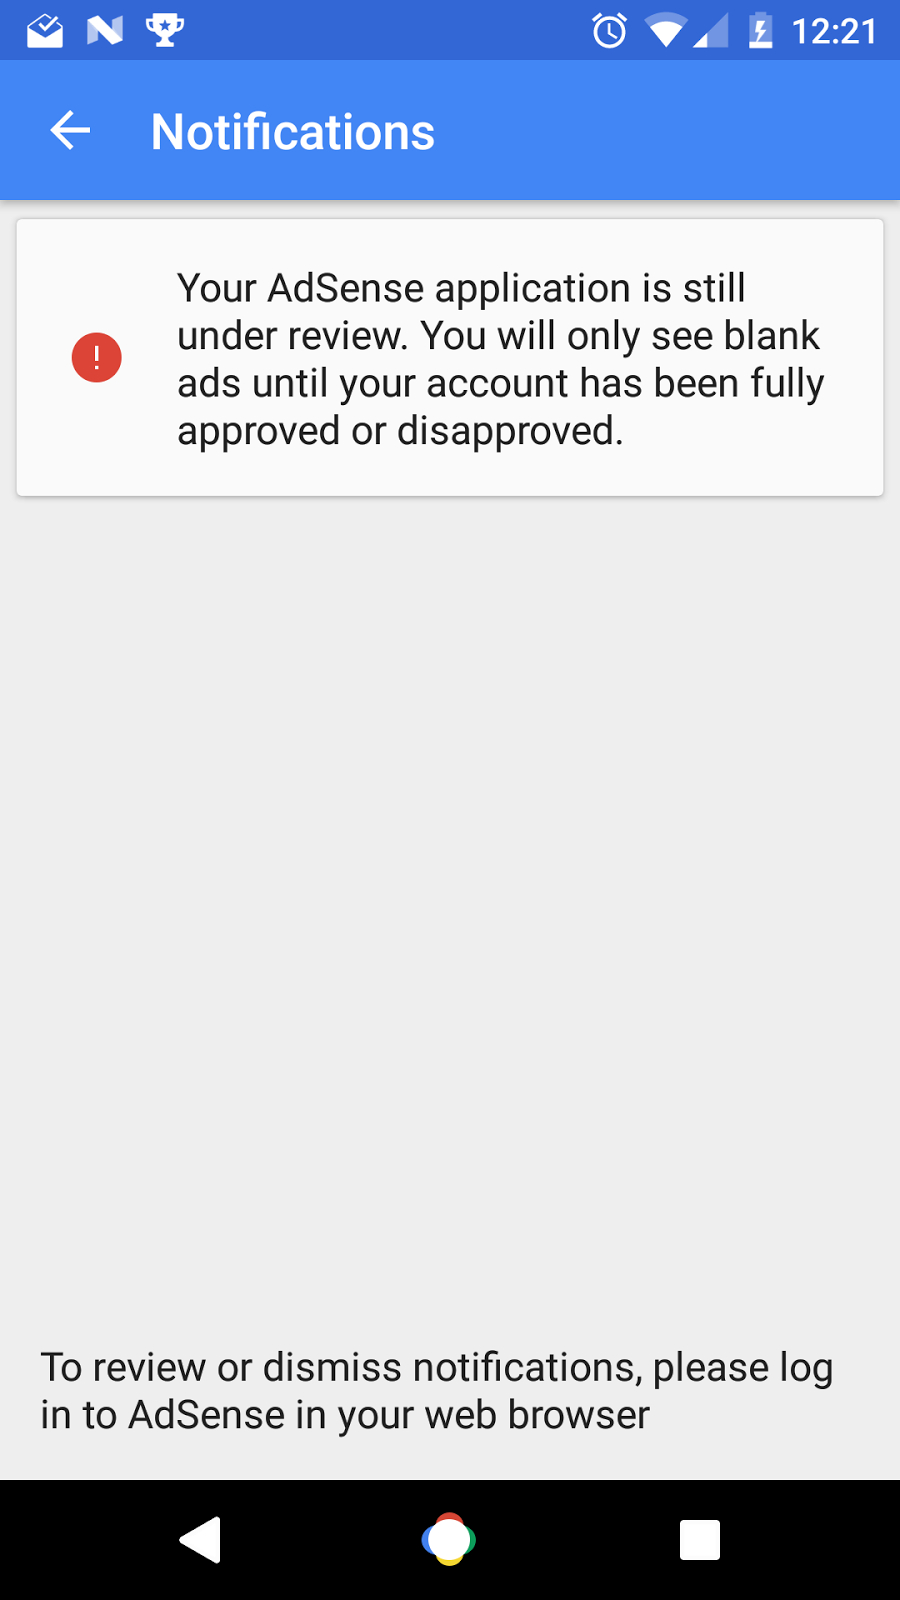 Why Is My Application Still Under Review? - Adsense Help pertaining to Blank My Account Information Logs